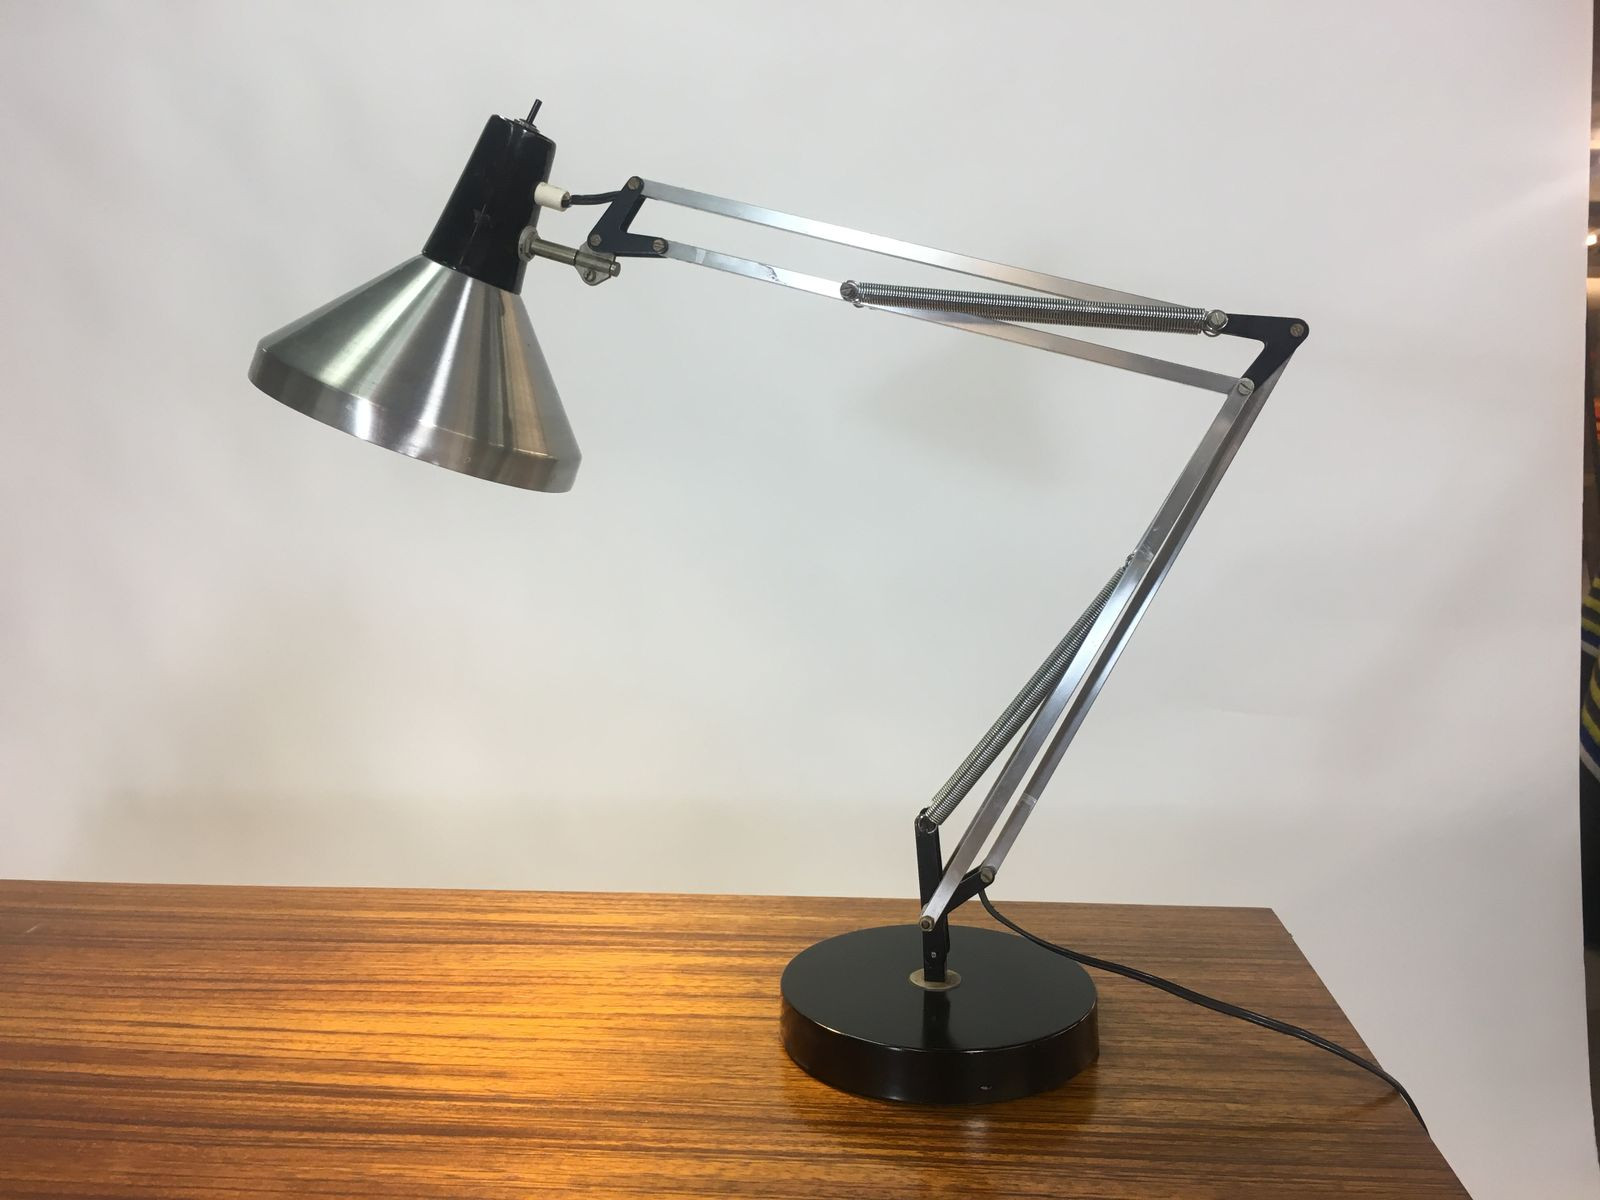 Best ideas about Architect Desk Lamp . Save or Pin Vintage Architect Desk Lamp for sale at Pamono Now.